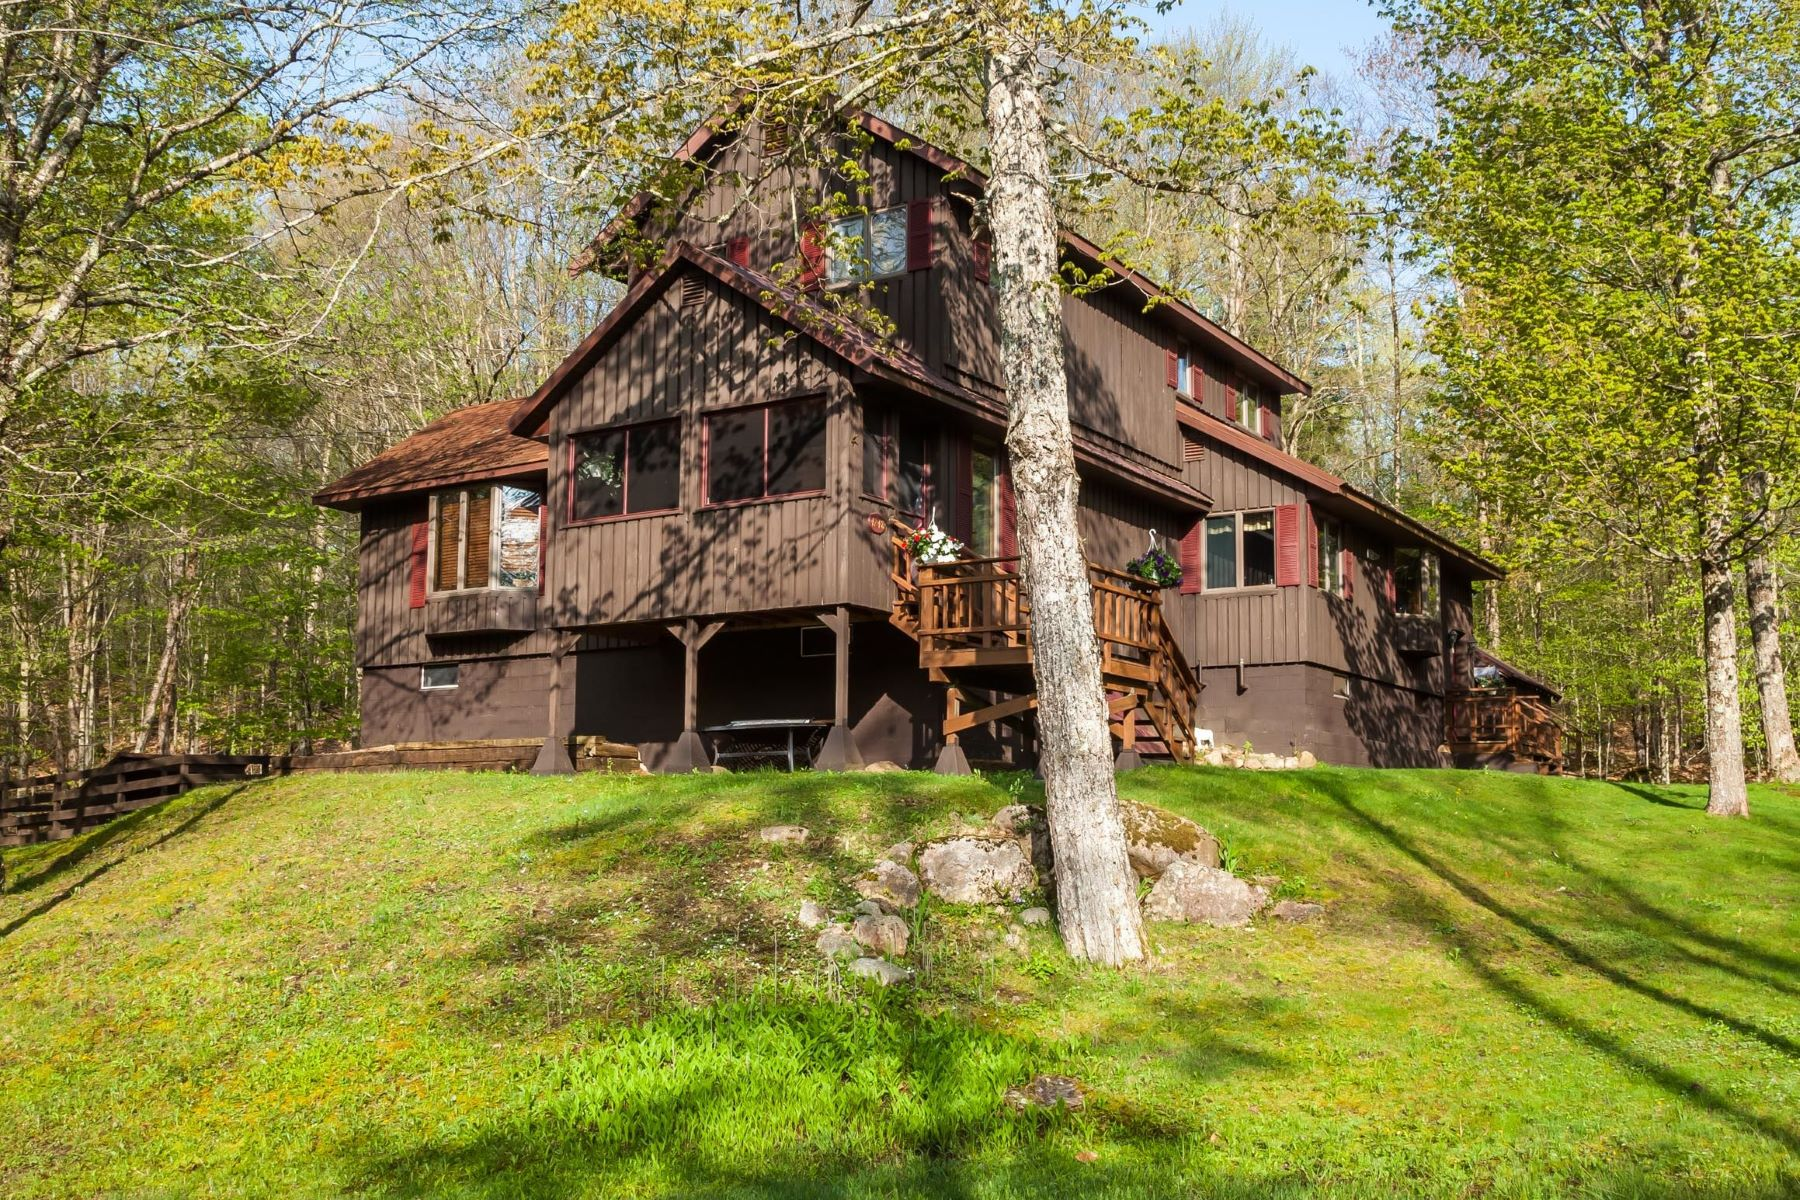 Single Family Homes for Sale at 4248 Lakeview Rd, Otter Lake, NY, 13338 4248 Lakeview Rd Otter Lake, New York 13338 United States